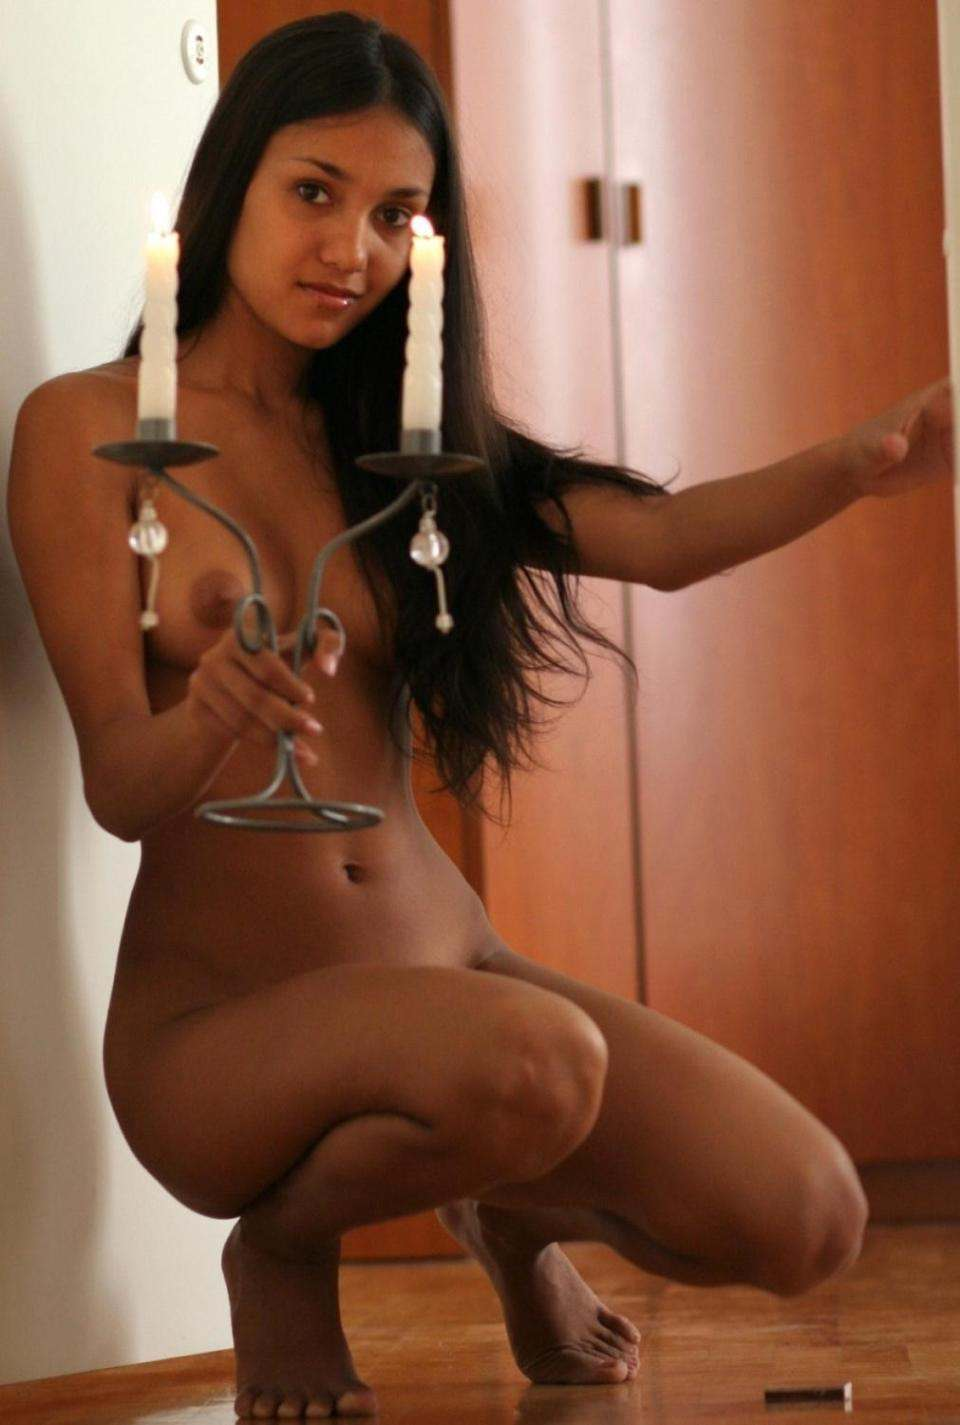 Beautiful Indian Young Girls Naked Body Pics-6644